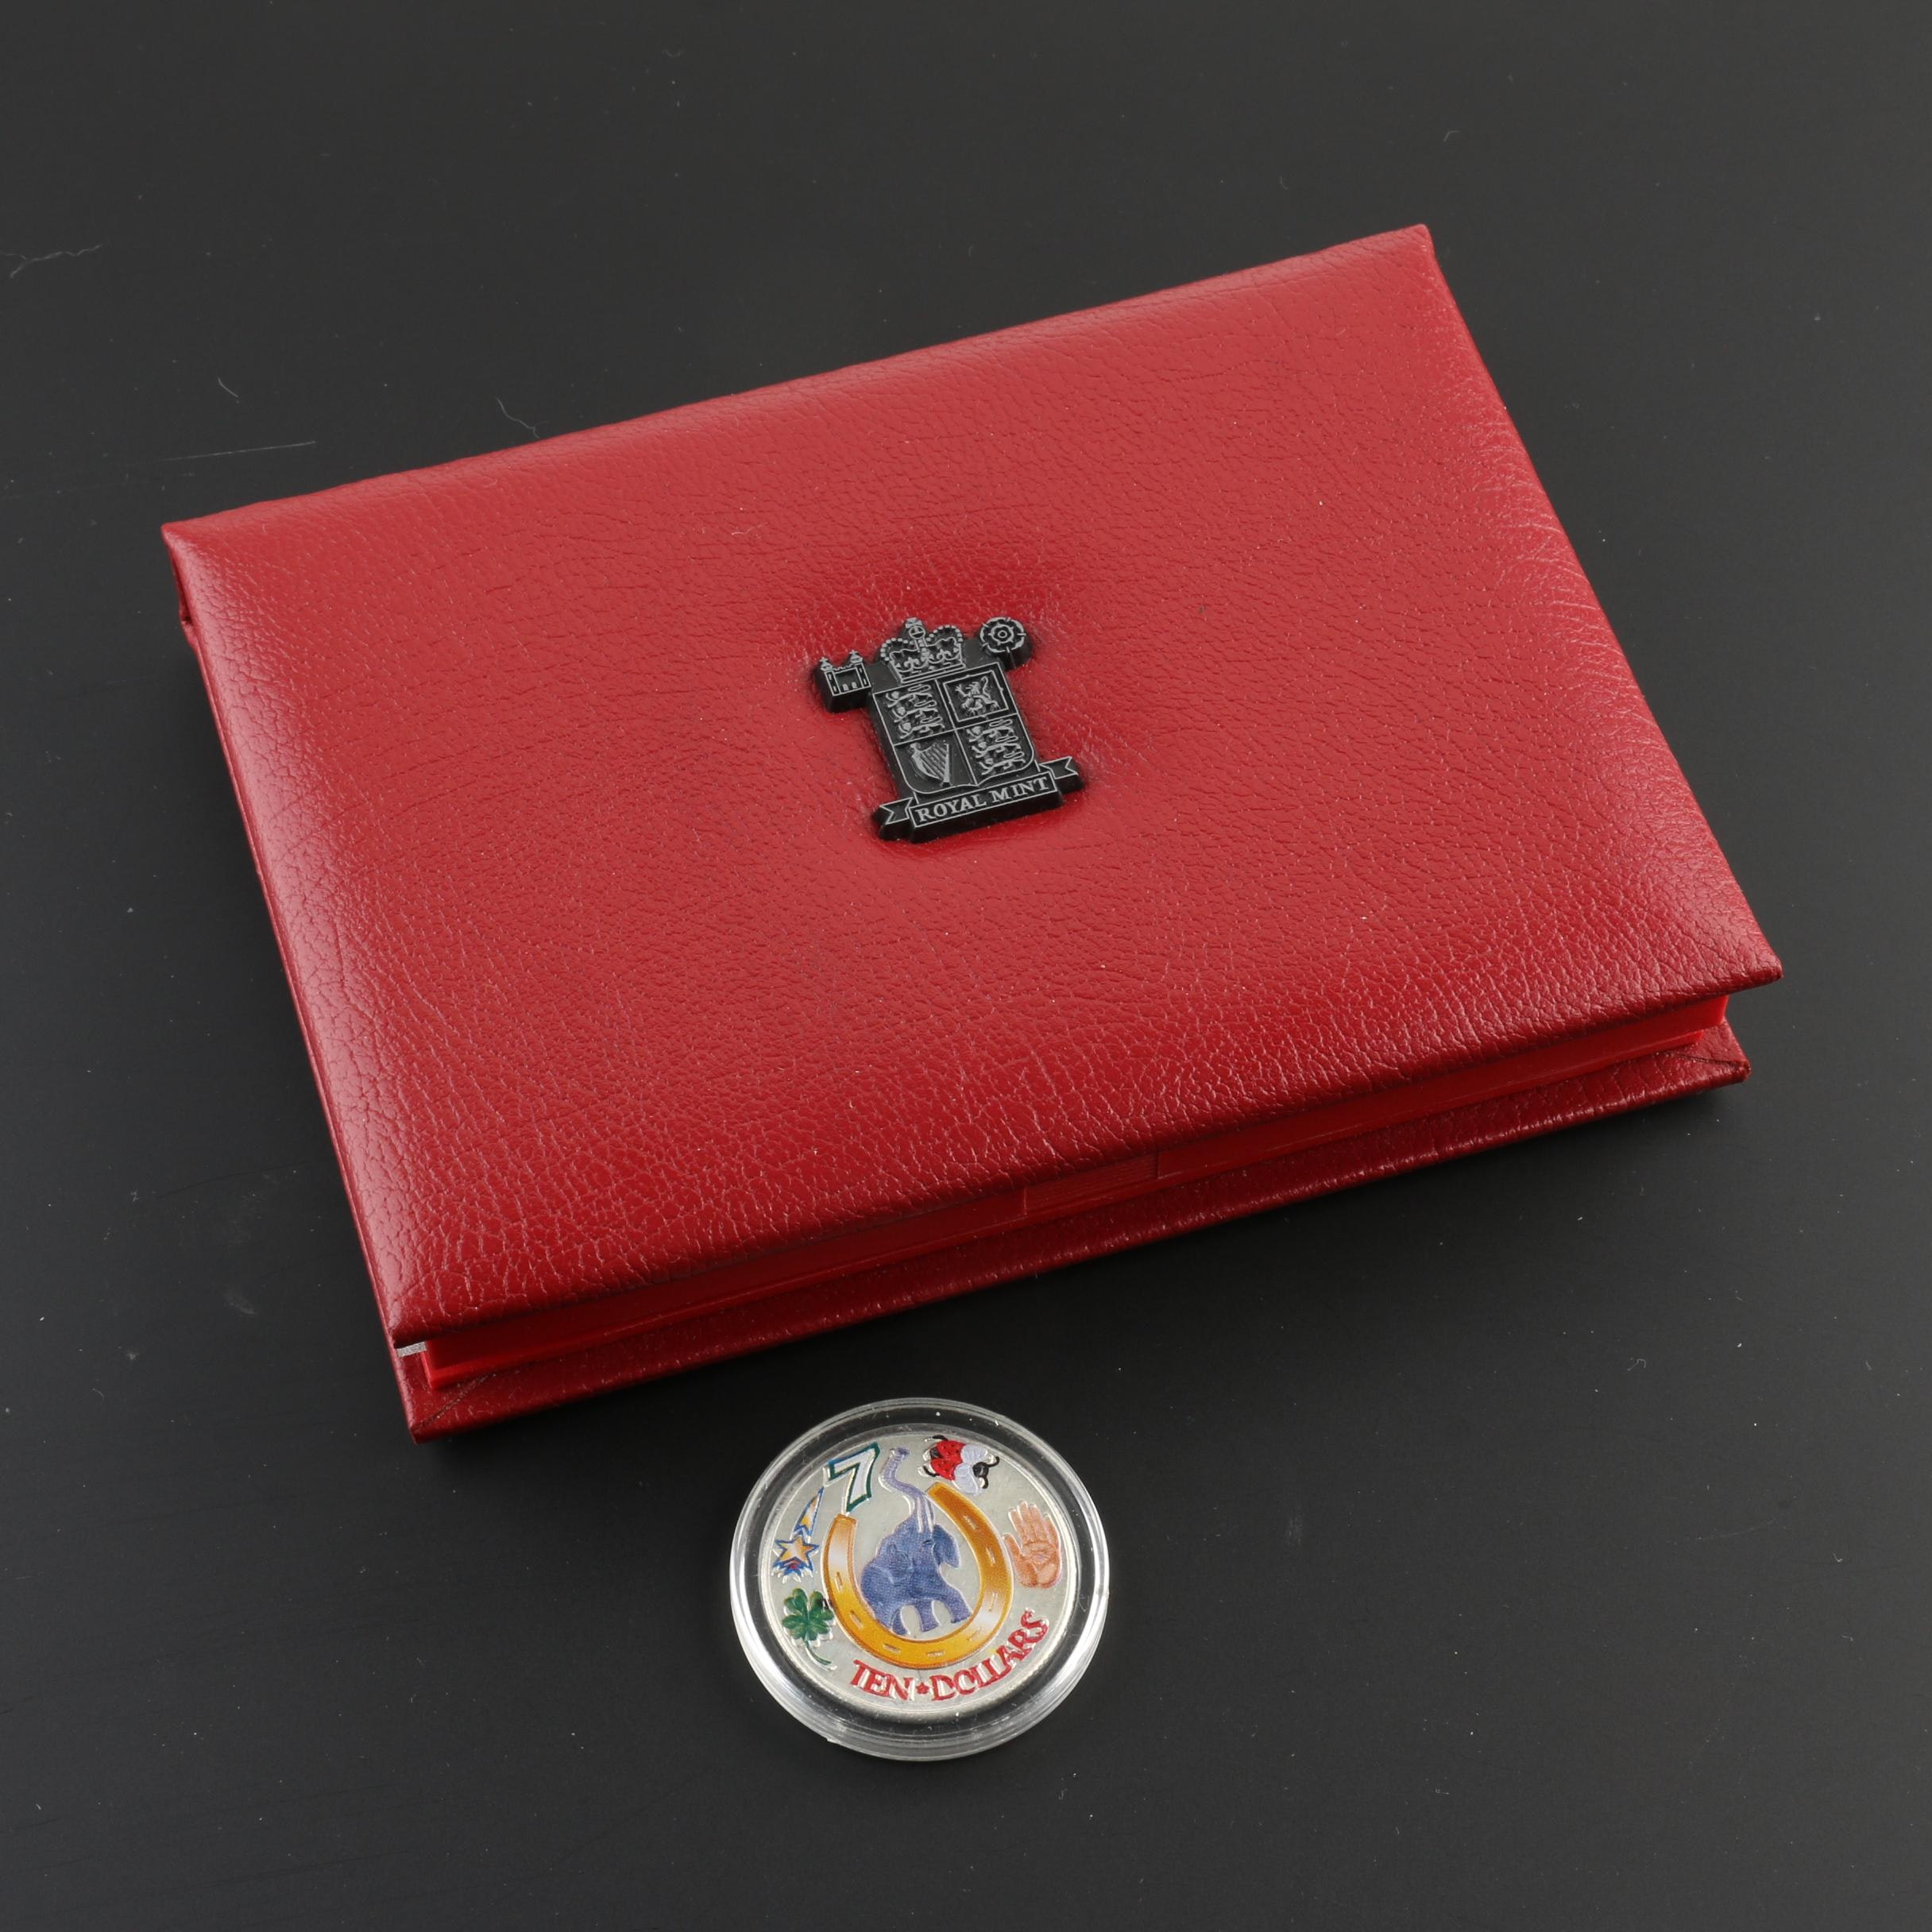 1996 United Kingdom Deluxe Proof Set and a 2000 Liberia Lucky $10 Coin